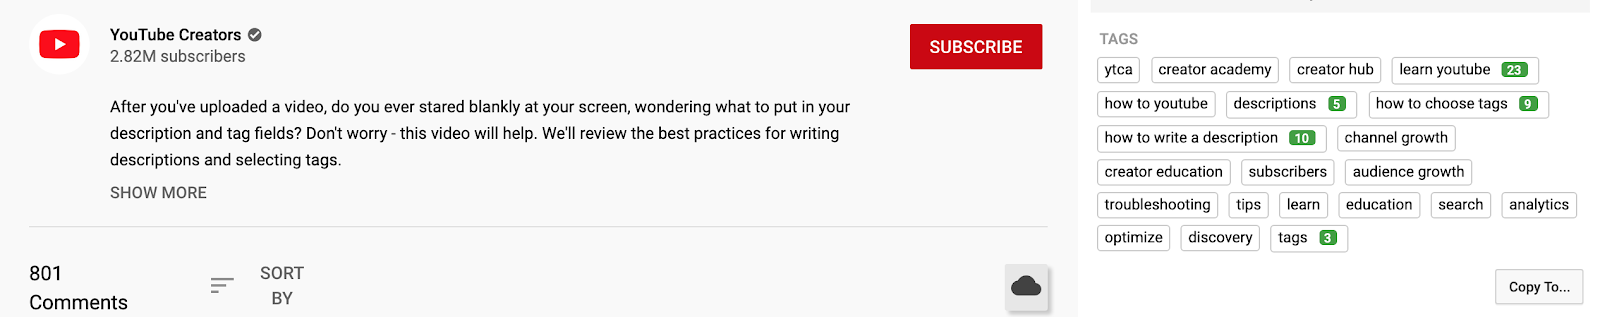 "YouTube in one of their videos about writing tags on the YouTube Creators channel advises ""to use the keywords or phrases that make the most sense for your video."" For this video itself, they have used a variety of tags: there are single words, the channel's name, and longer phrases."